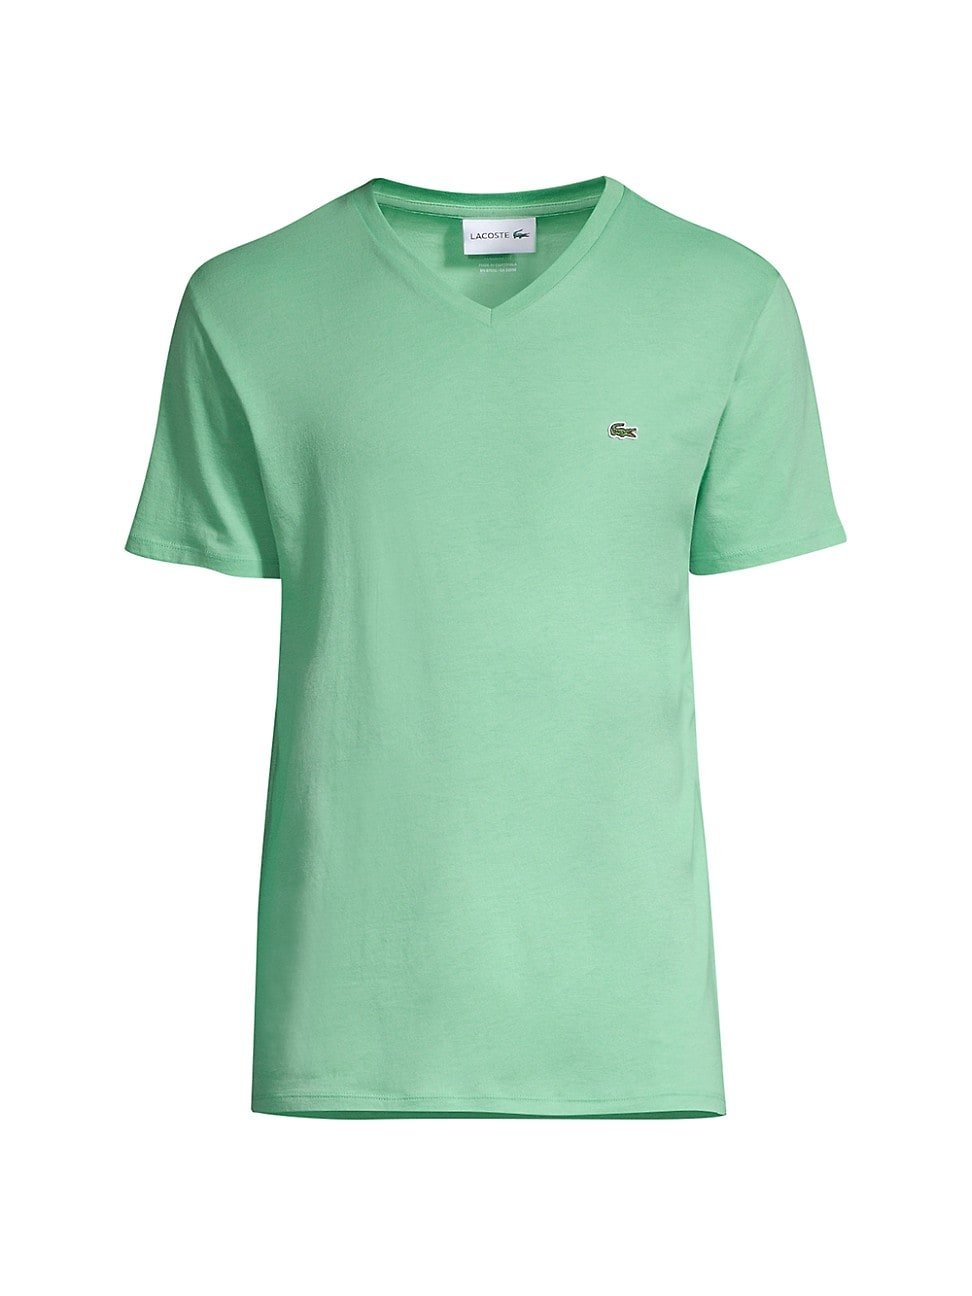 Lacoste WOMEN'S SOLID V-NECK JERSEY T-SHIRT